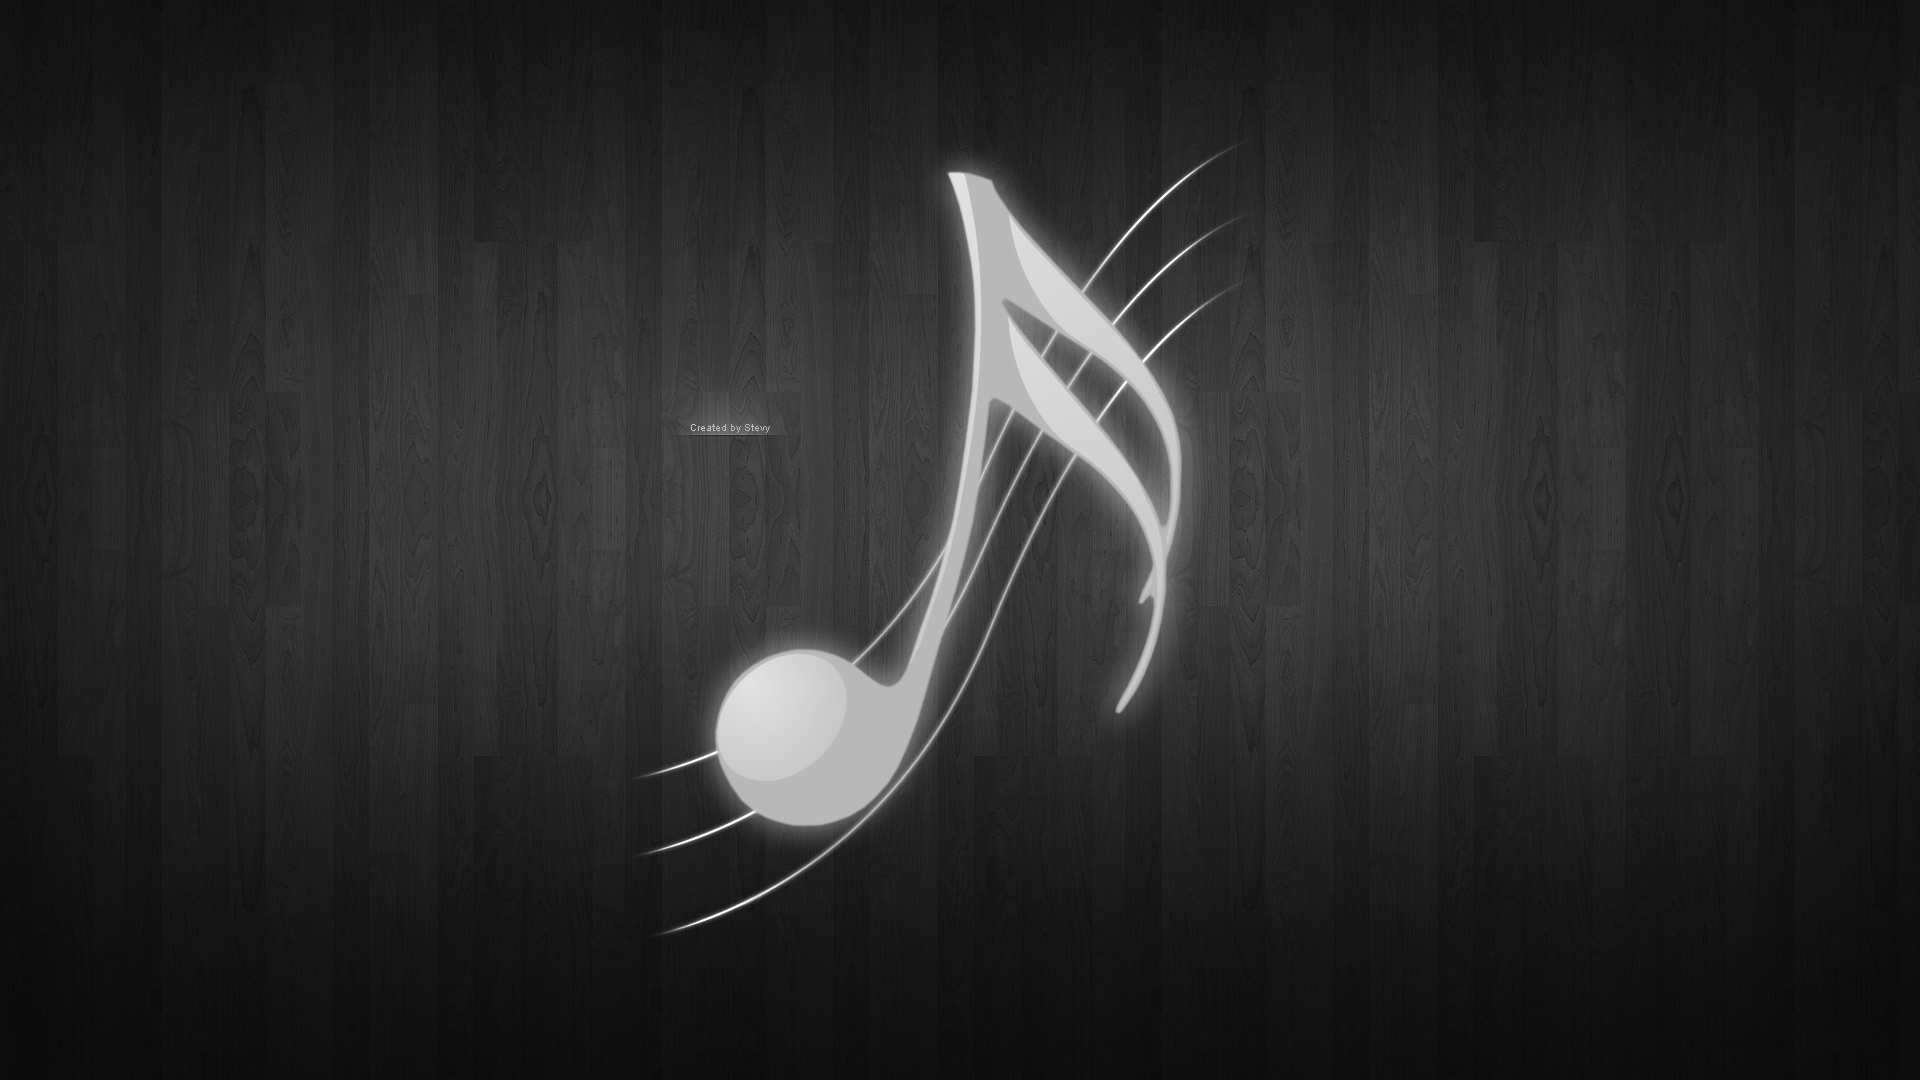 Music Wallpaper Hd - QyGjxZ